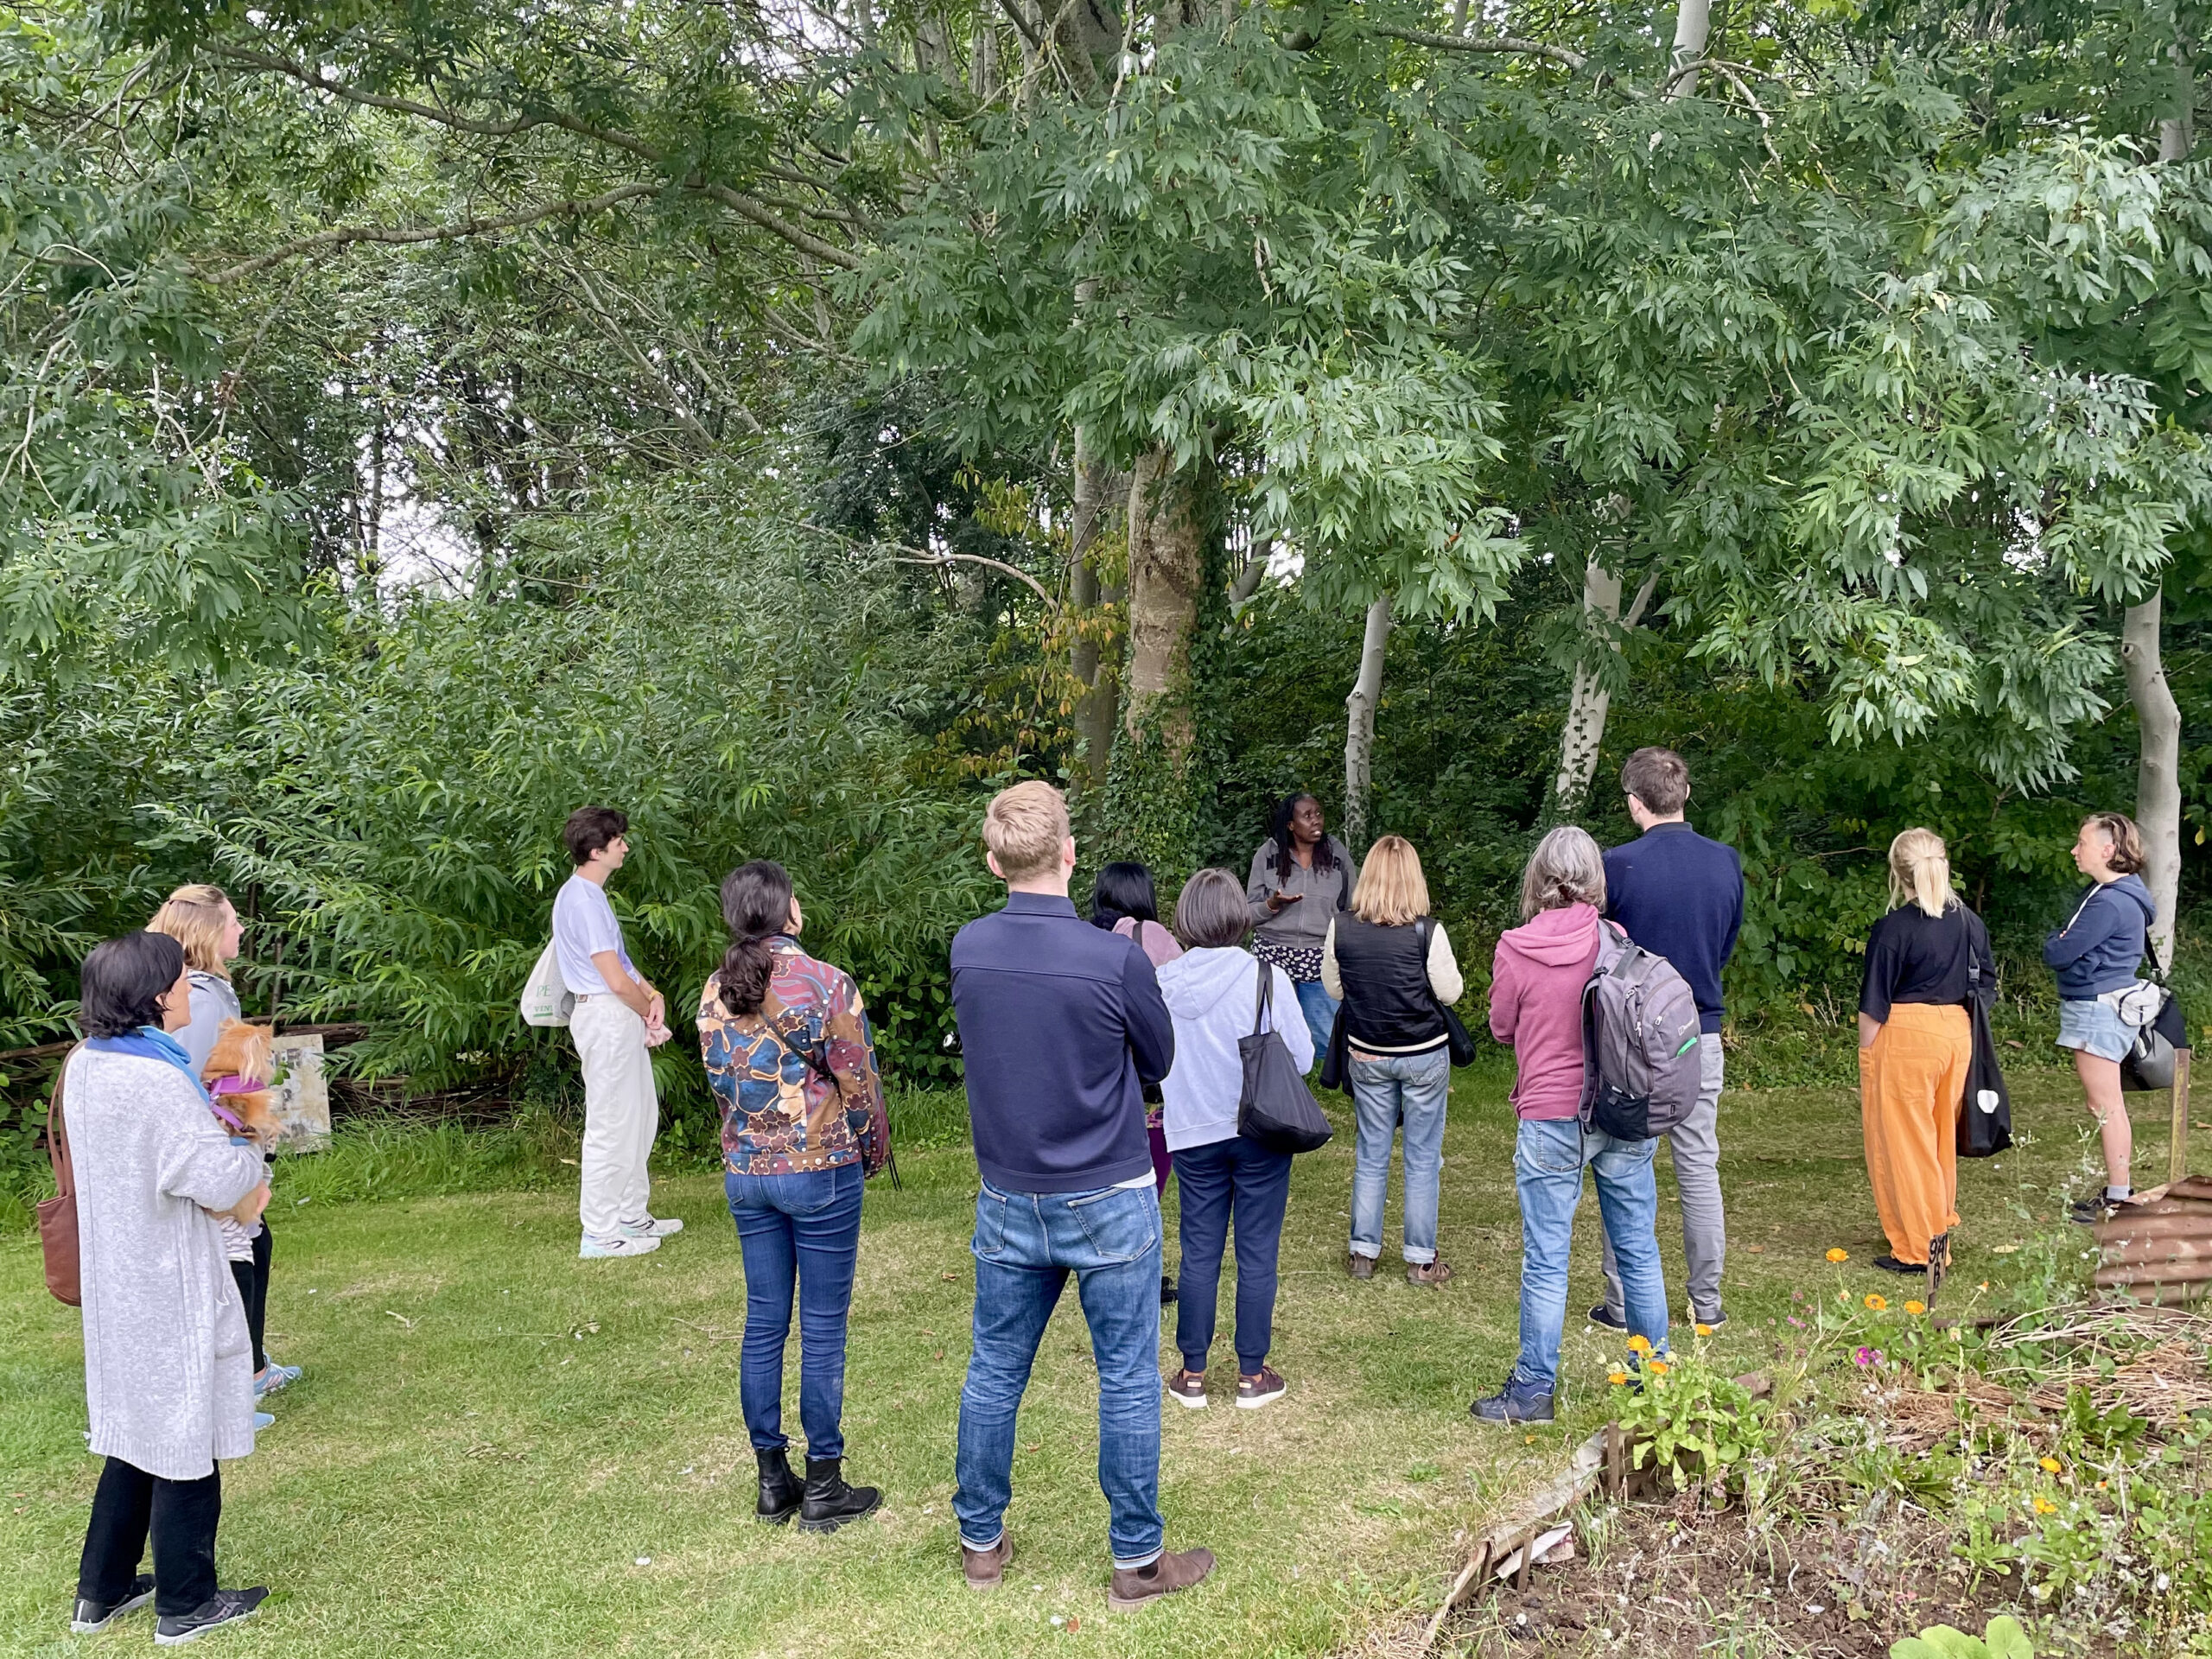 Before the reading and arrival at the 1918 Allotment attendees were given a tour of the site, including a walk through the wood in silence